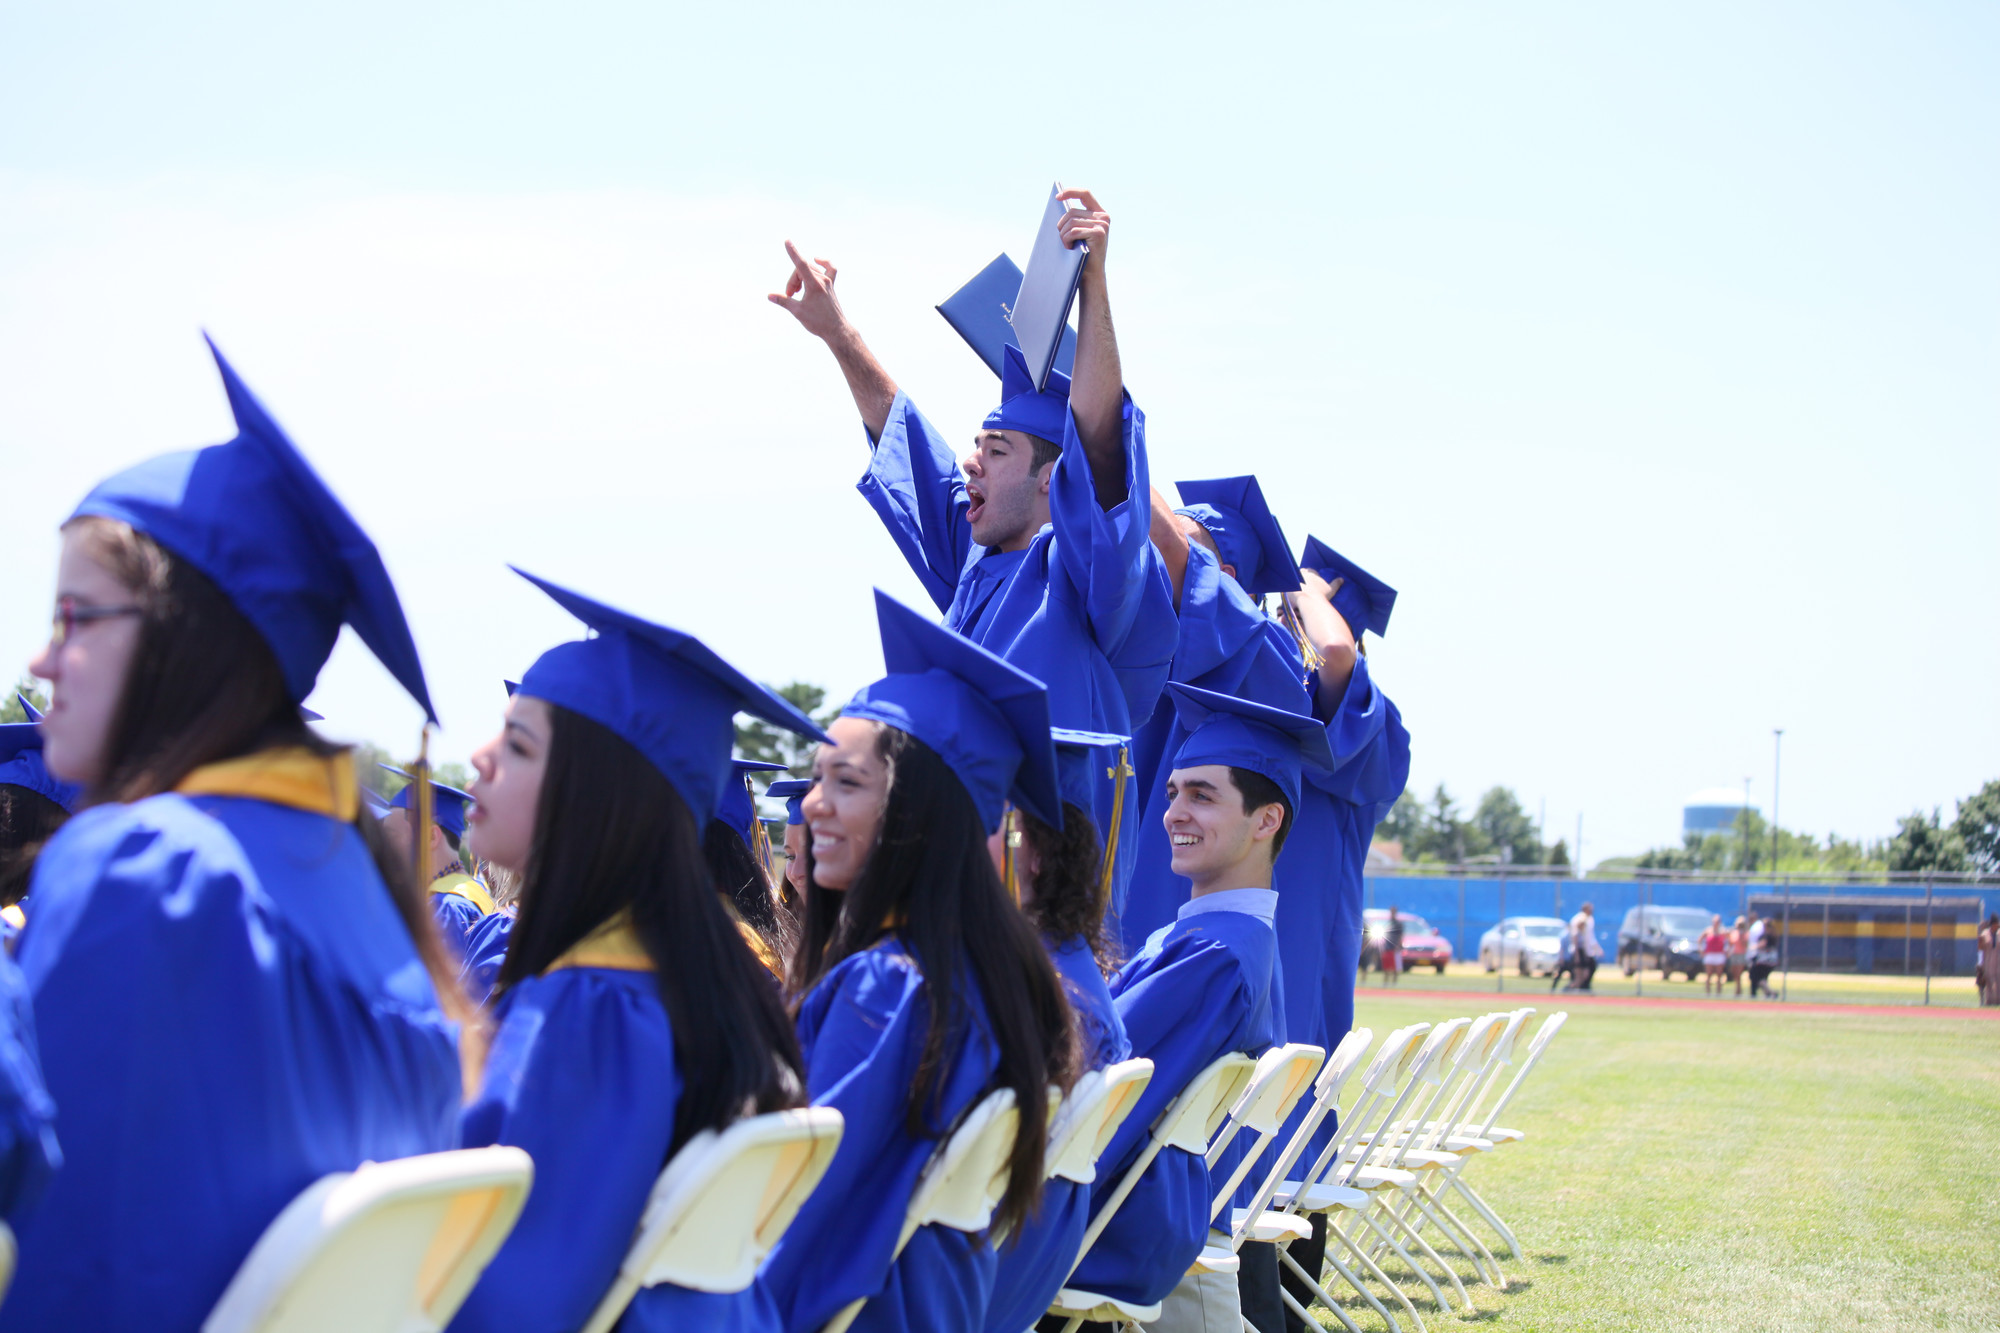 graduating seniors cheered as their classmates' names were called to receive their diplomas.